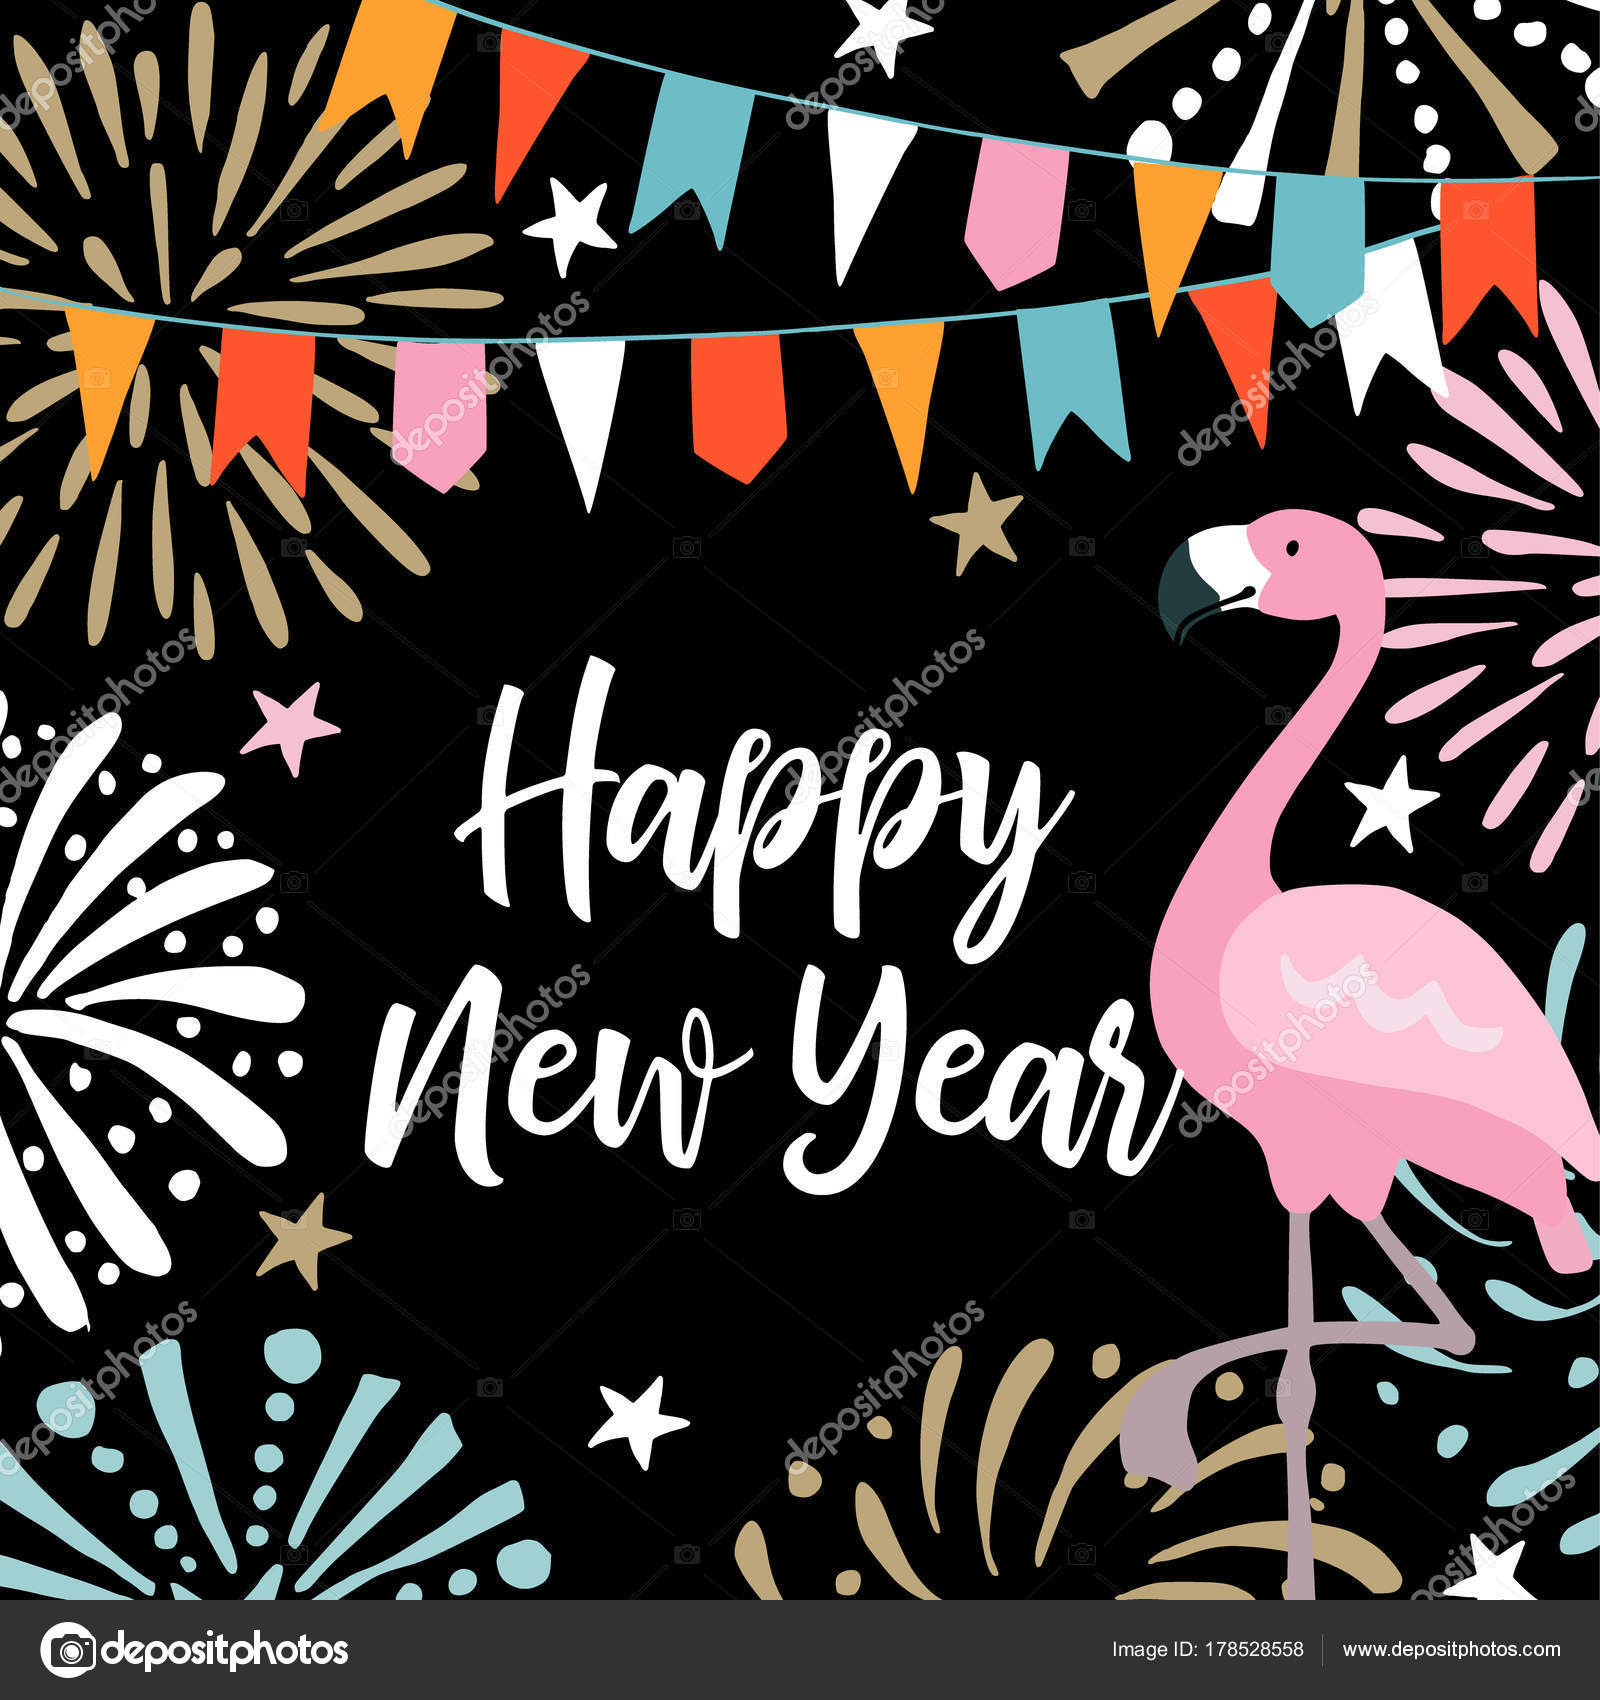 happy new year greeting card invitation with hand drawn fireworks flags and flamingo bird birthday party decoration vector illustration background